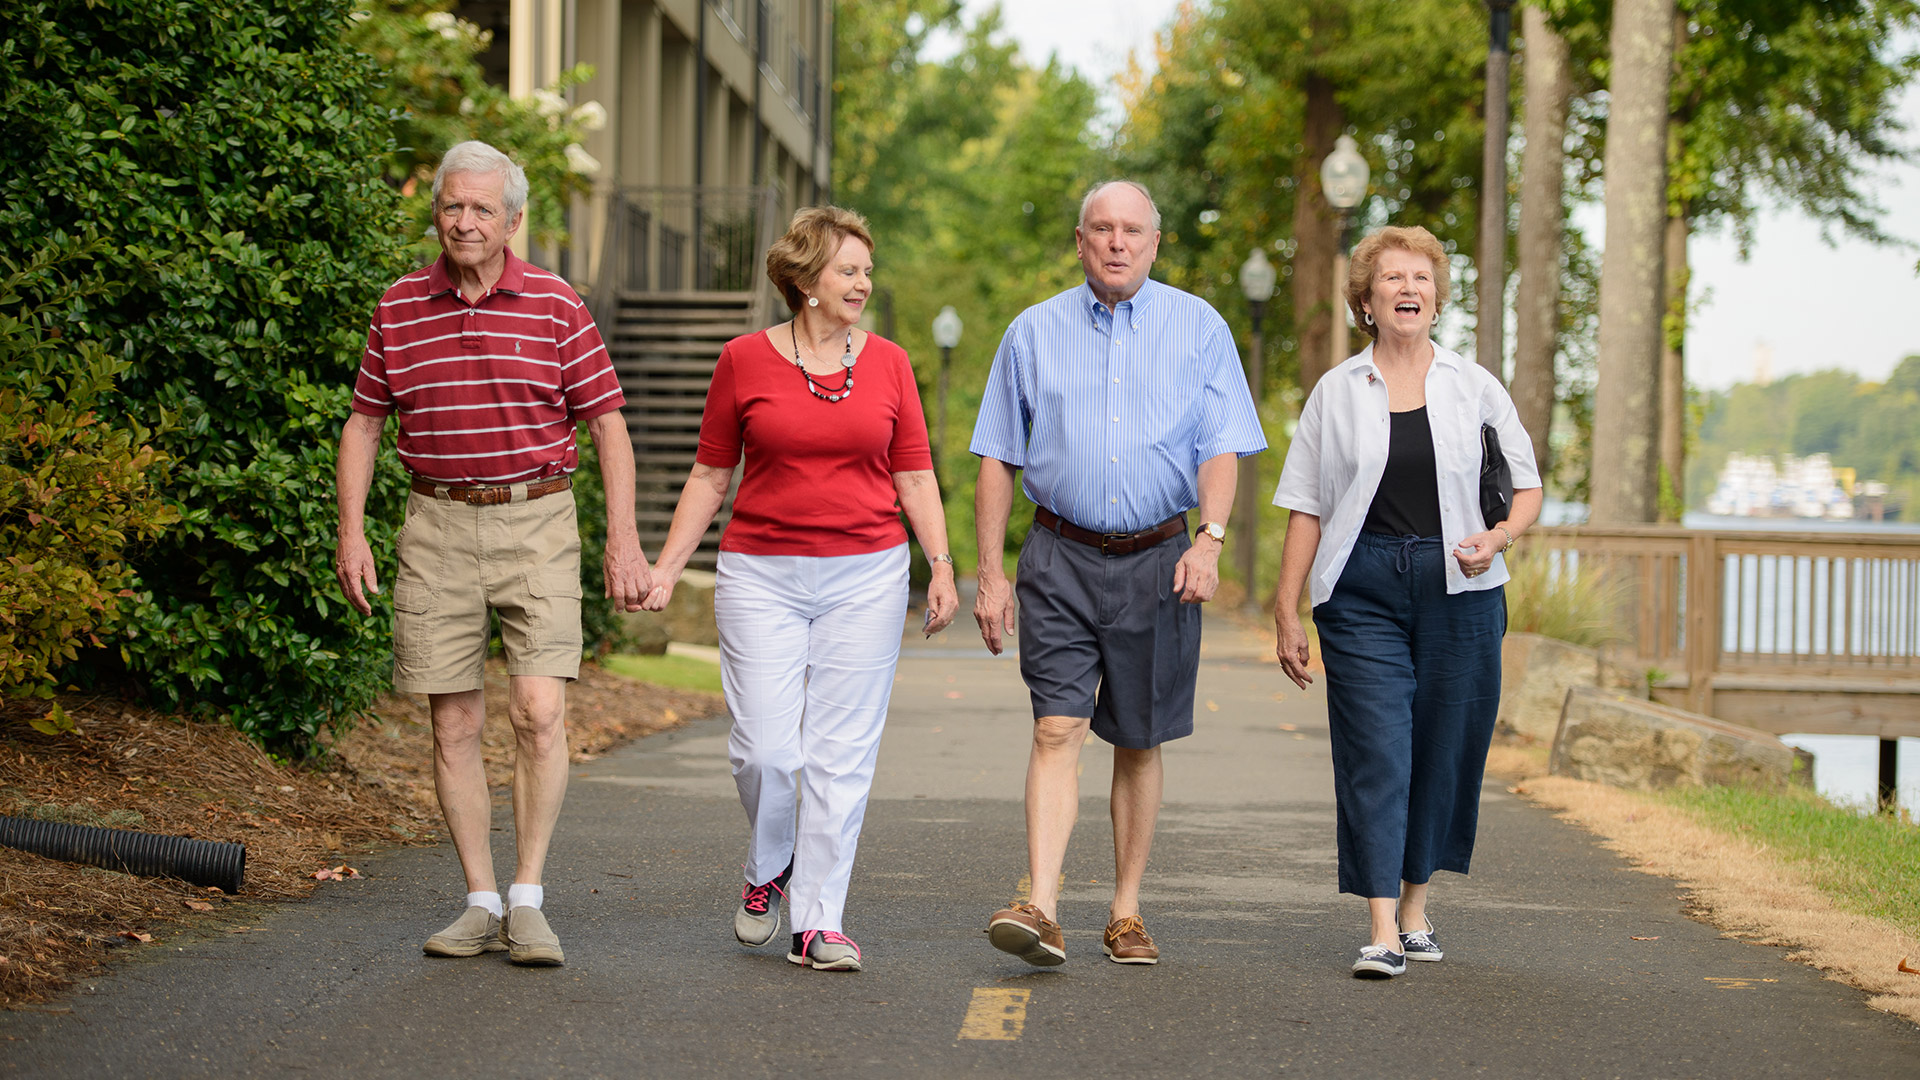 Four people walking together outside on a sunny day